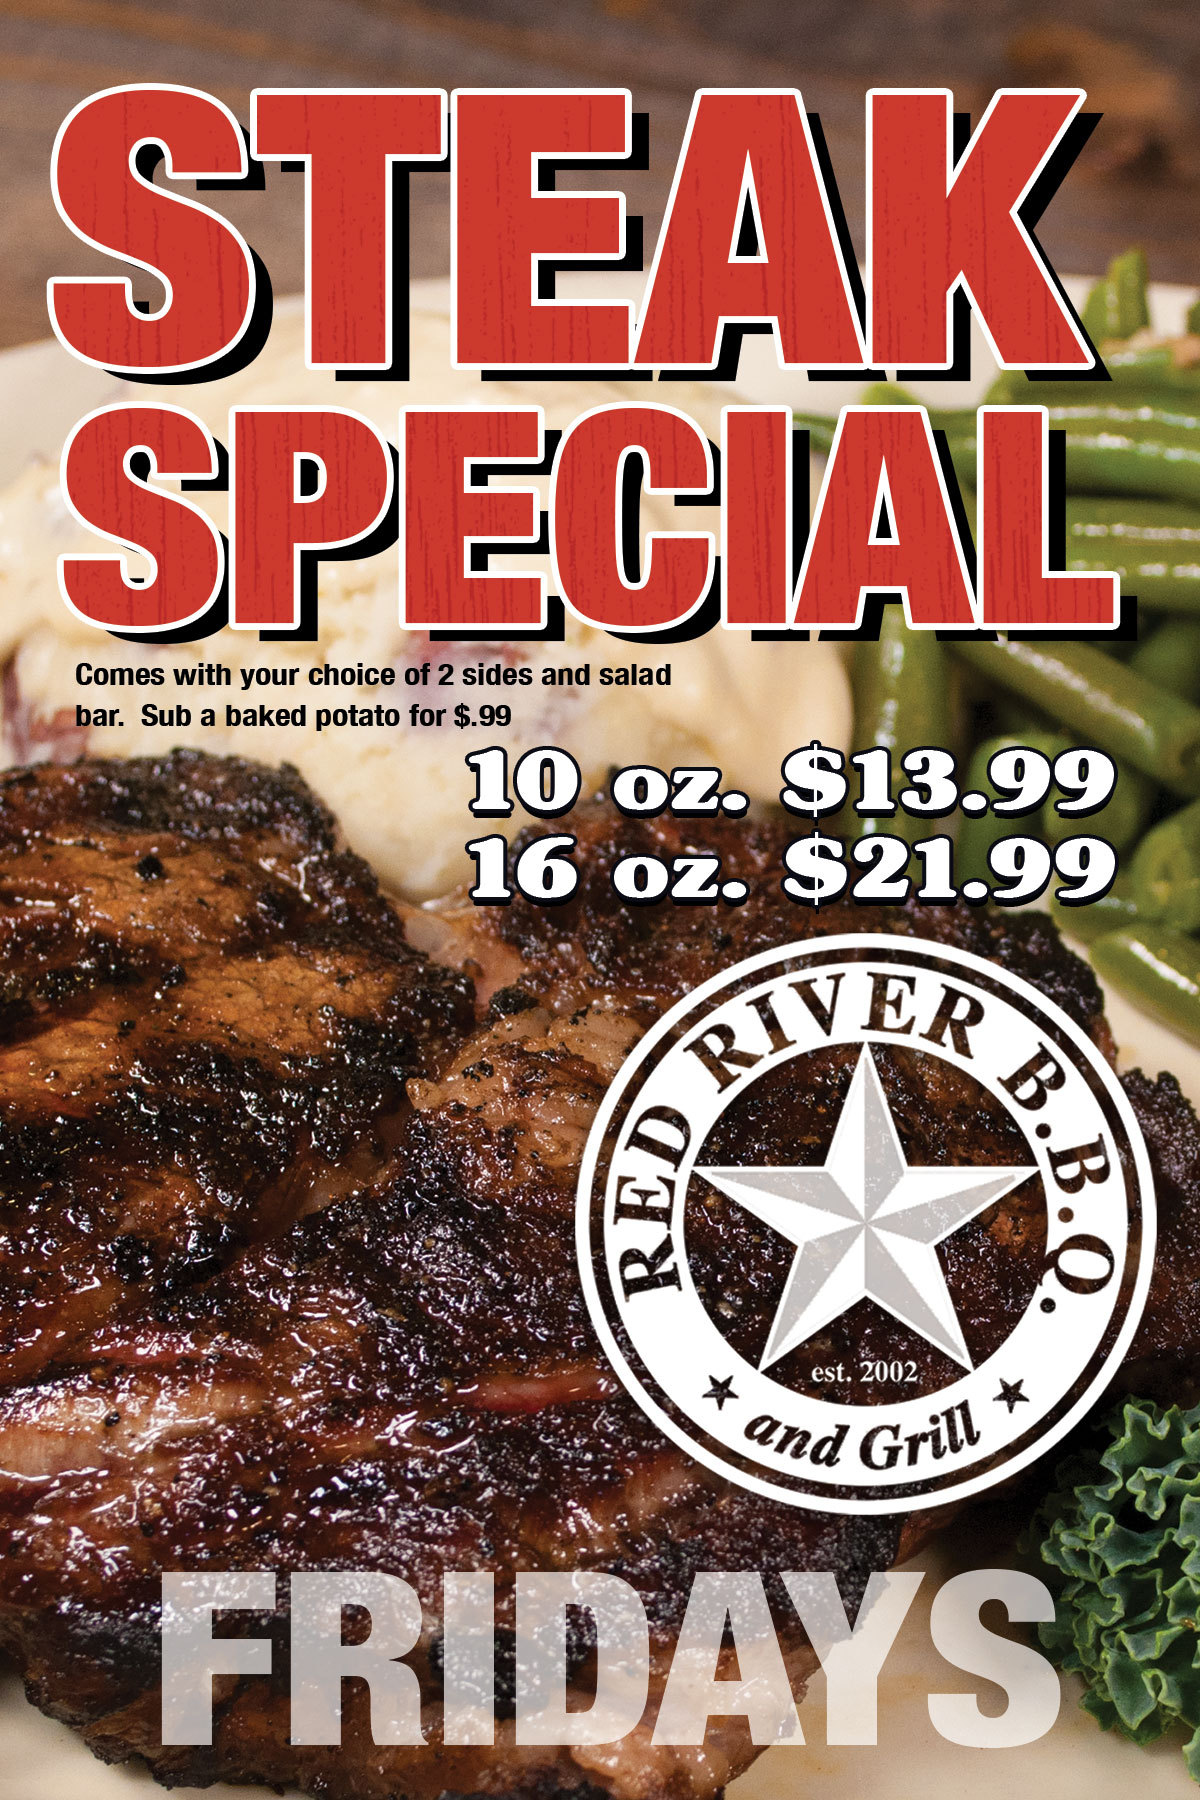 Steak on Special - 10oz. - 13.99 or 16oz. - 21.99